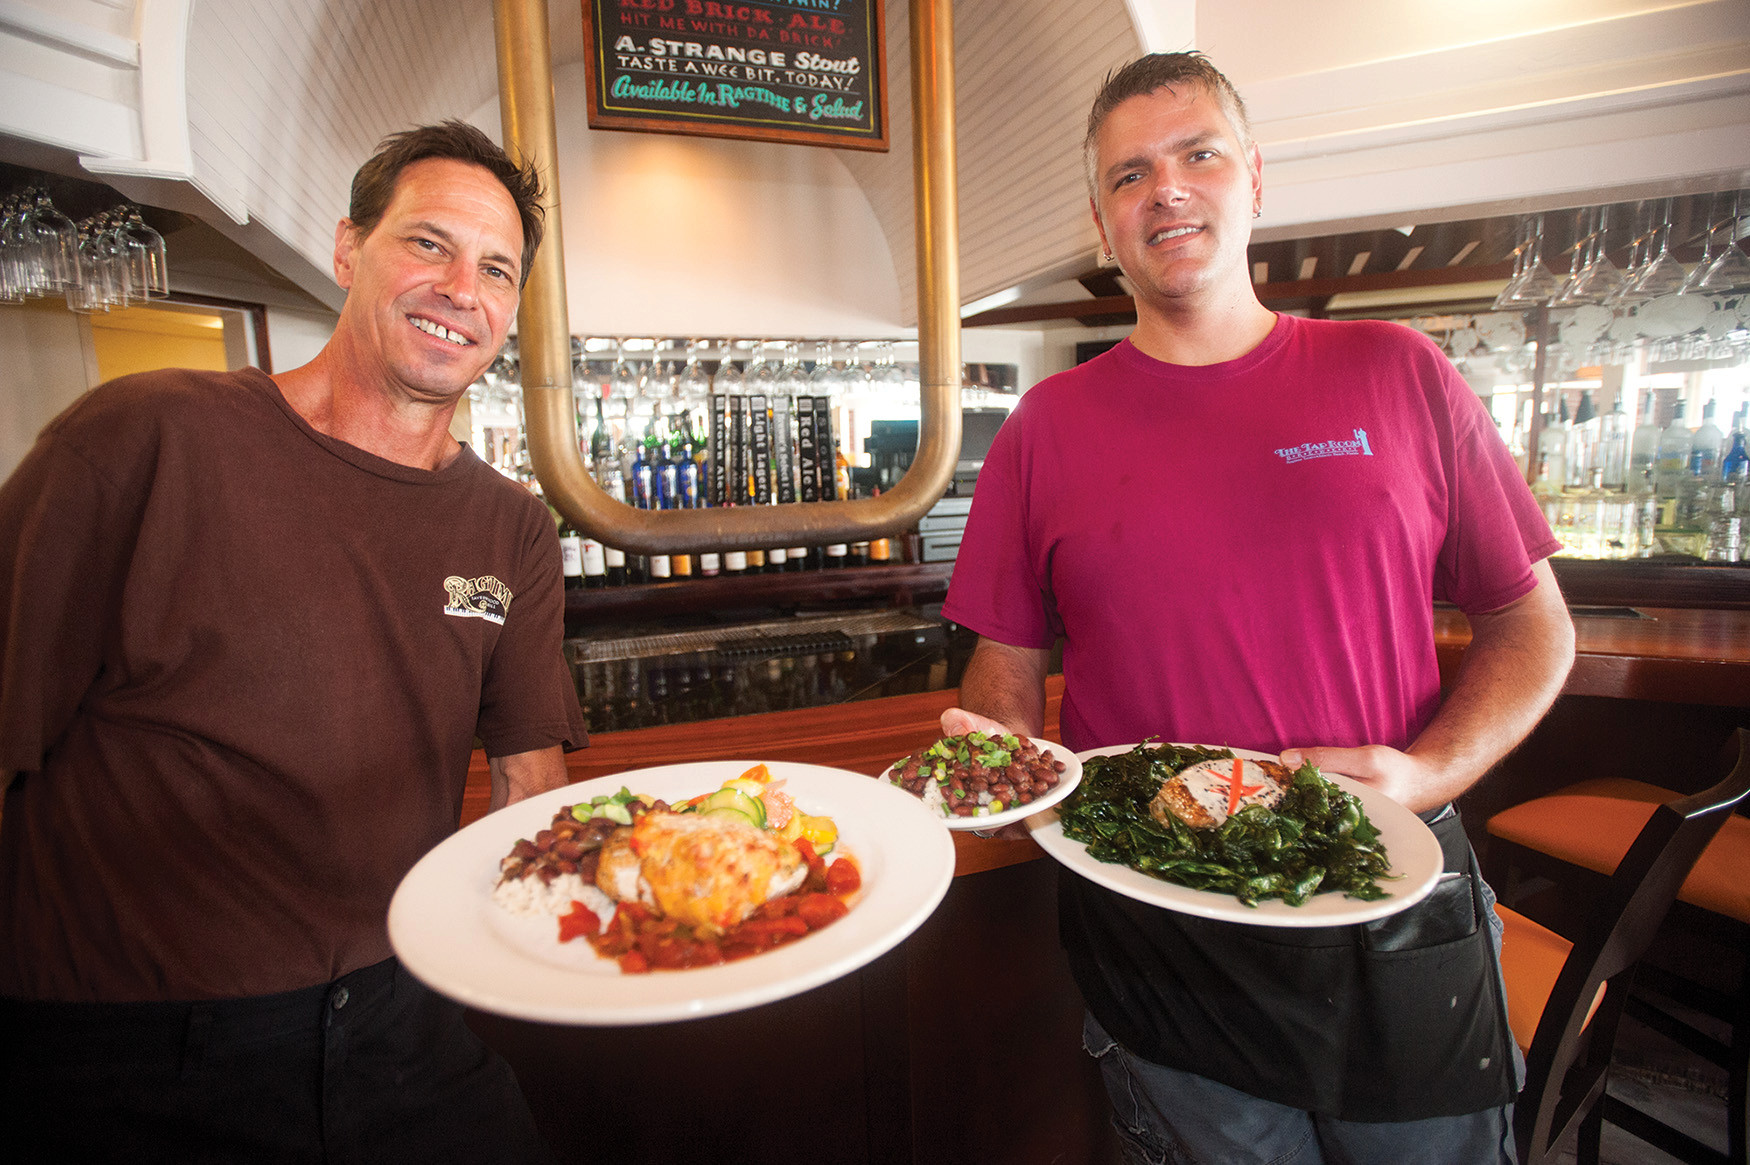 Ragtime Tavern Seafood & Grill in Atlantic Beach just celebrated its 30th anniversary. David Keys and Matthew Johnson invite you to try Andouille-crusted mahi topped with Cajun spices (left) and sesame tuna over fried spinach with ginger remoulade, red beans and rice.